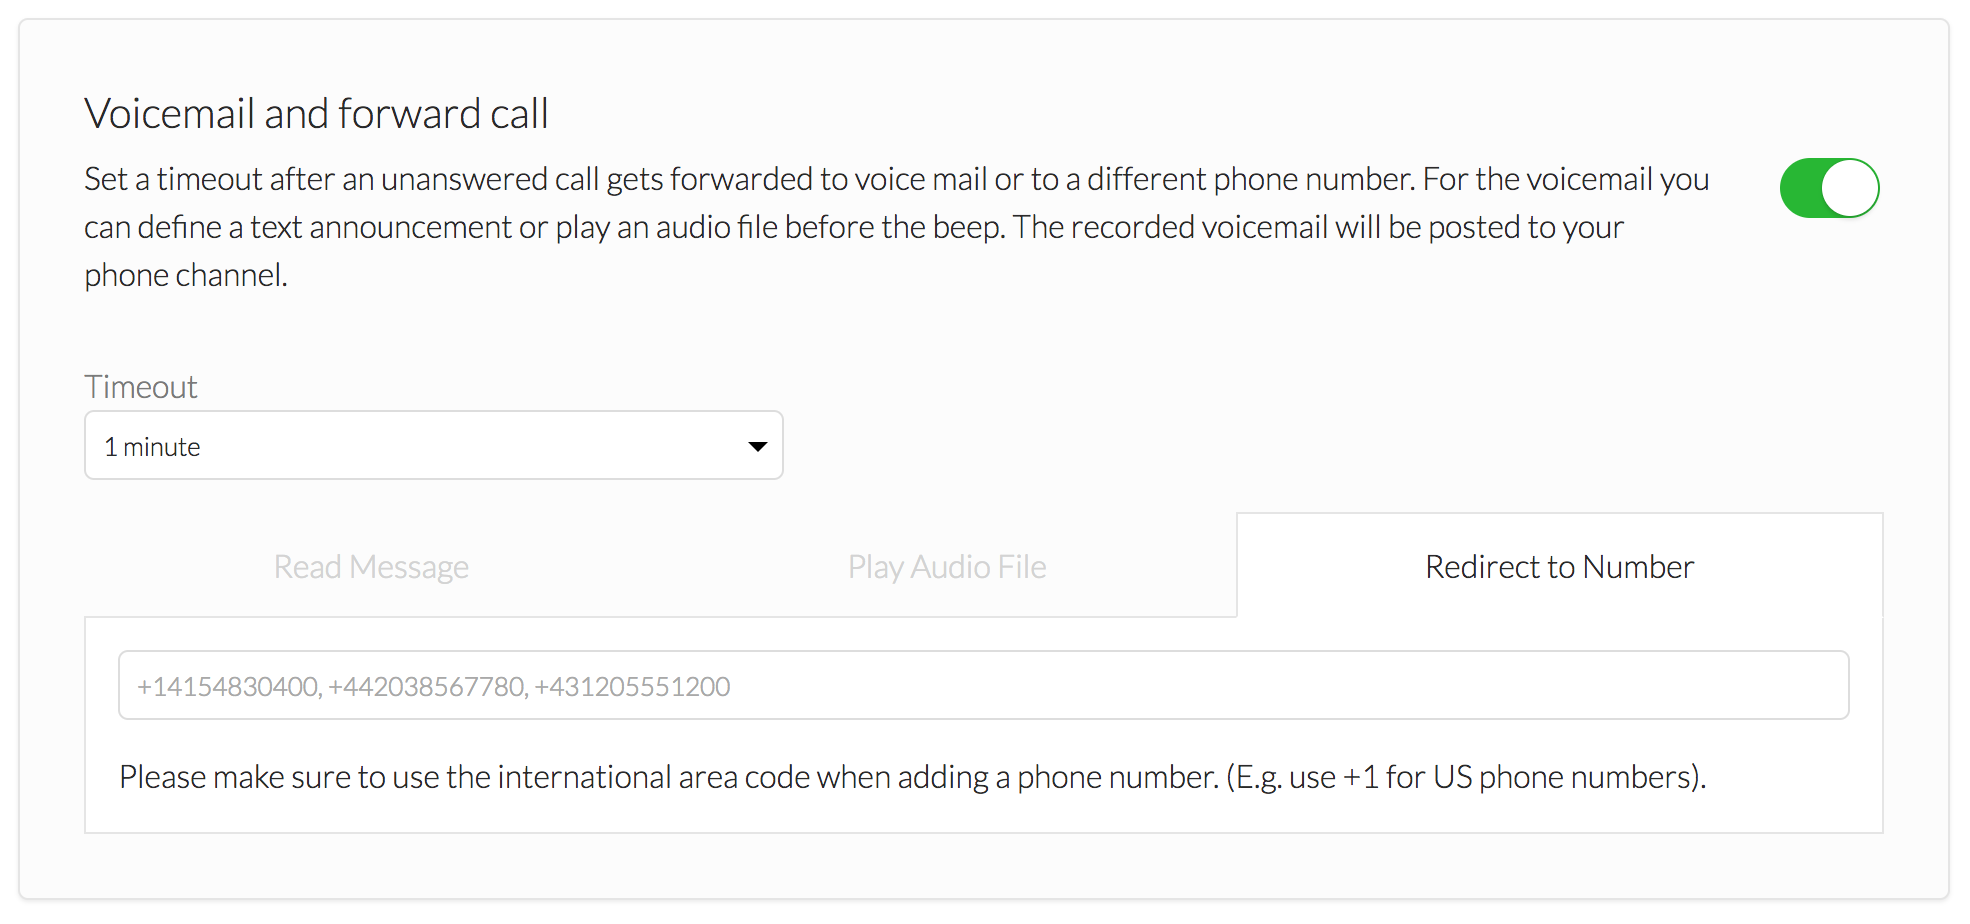 Make sure you are adding the international area code when putting in your phone number!